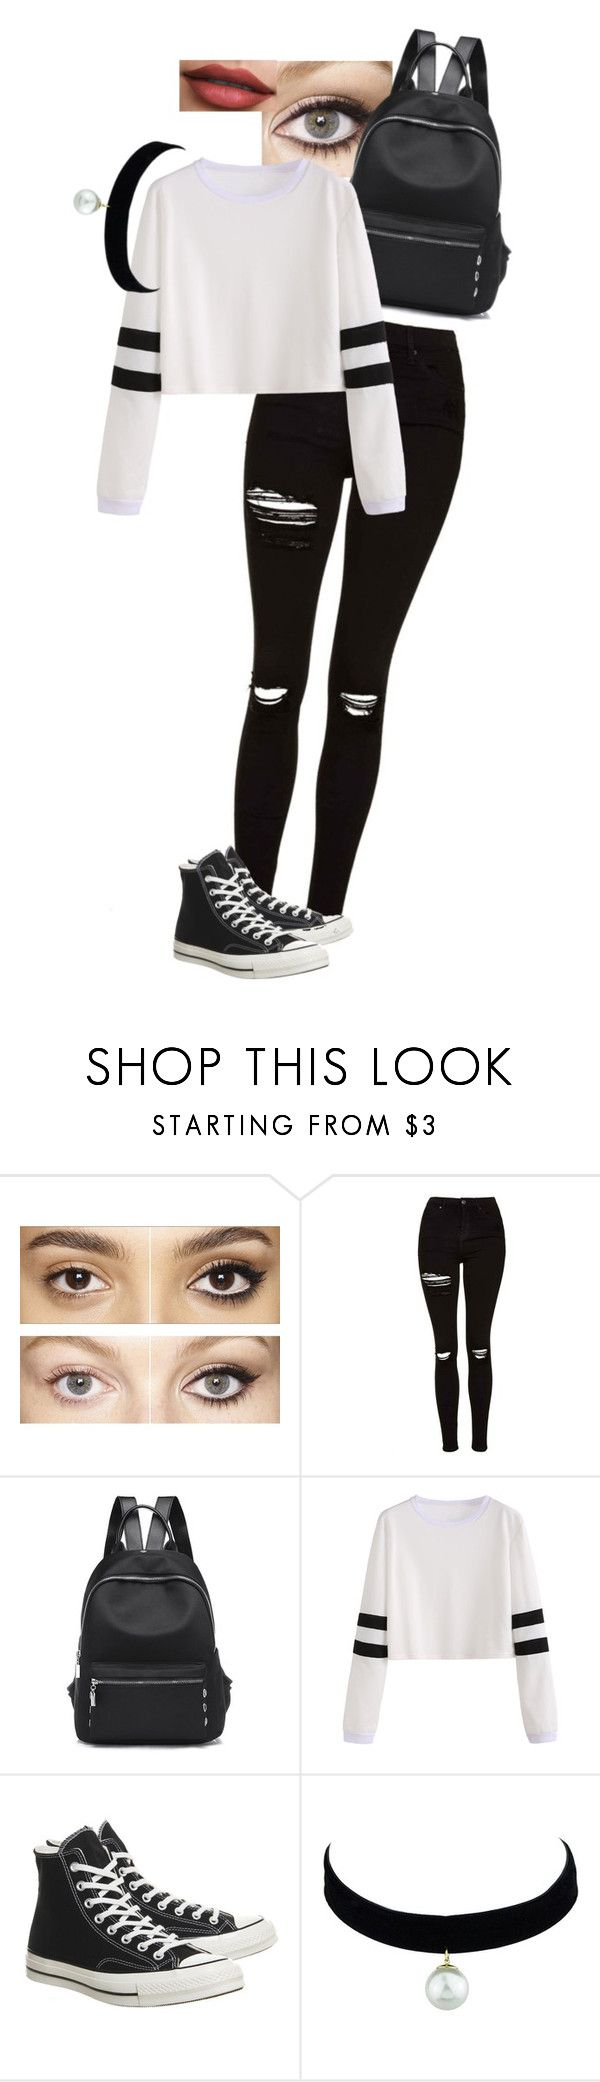 """outfit"" by kaylie203 ❤ liked on Polyvore featuring Charlotte Tilbury, Topshop and Converse"